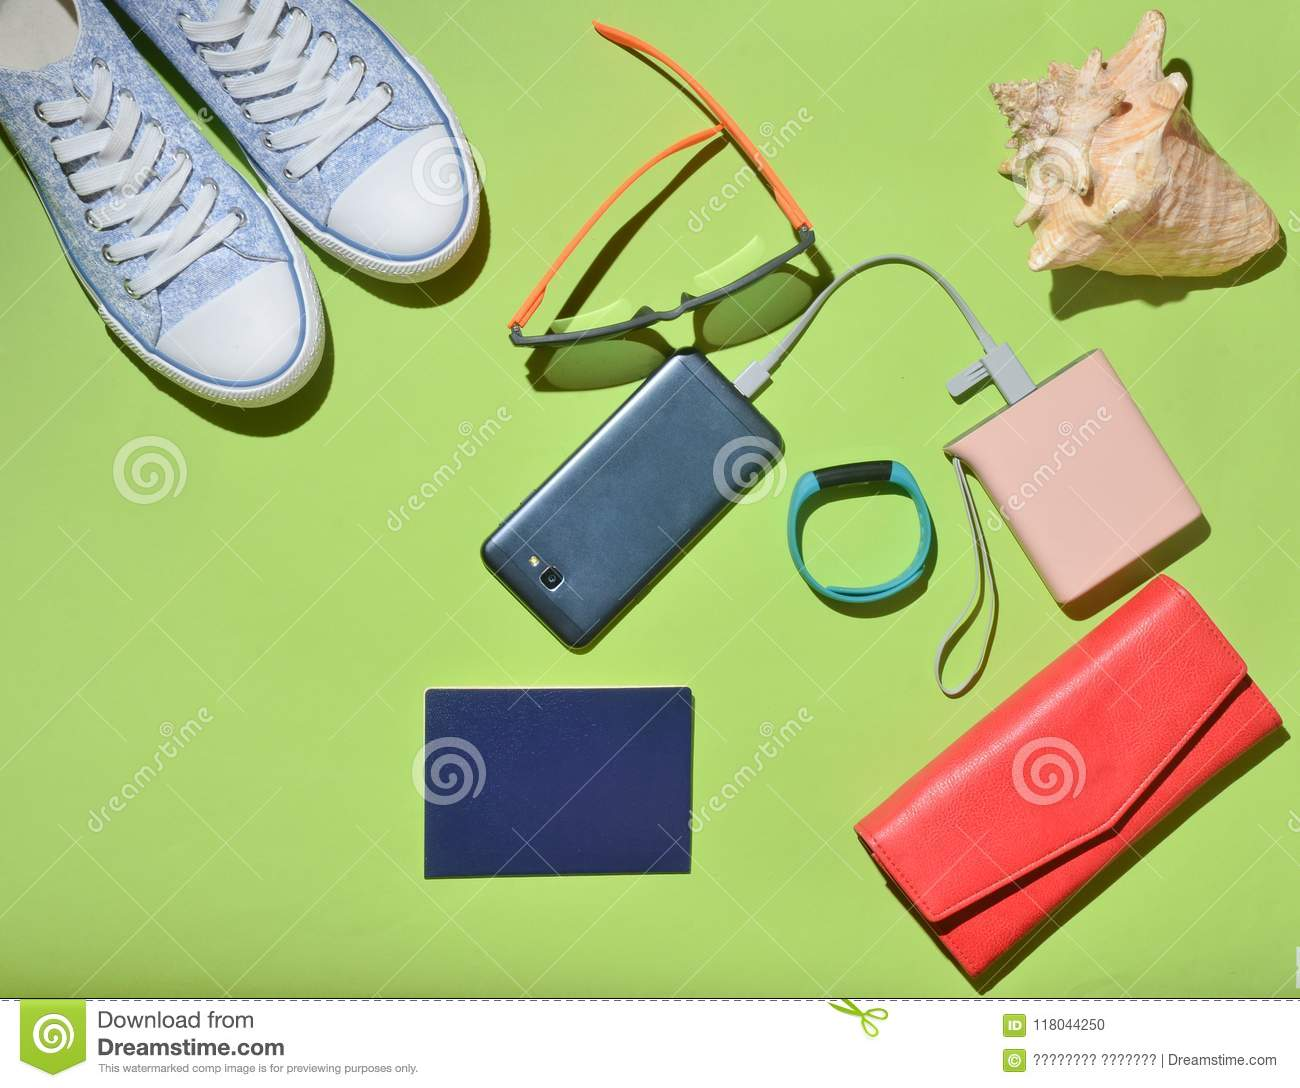 Women s trendy travel accessories and technology gadgets on the green  surface. Sneakers d8141fe1b2